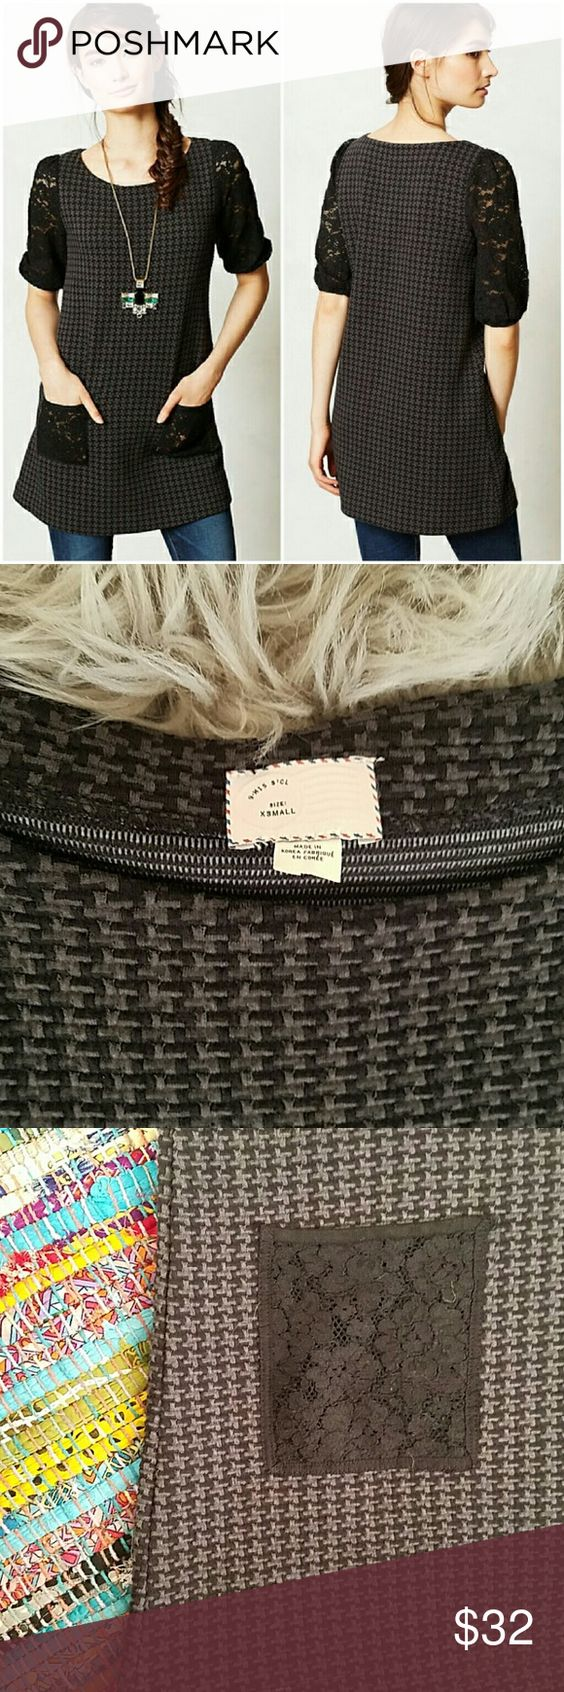 Anthropologie Lace Sleeve Houndstooth Tunic XS This is a like new tunic from Anthropologie. Gray and black. Stretchy cotton blend. Textured gray and black houndstooth body. Like new condition with no flaws. Xsmall, but an oversized fit. Anthropologie Tops